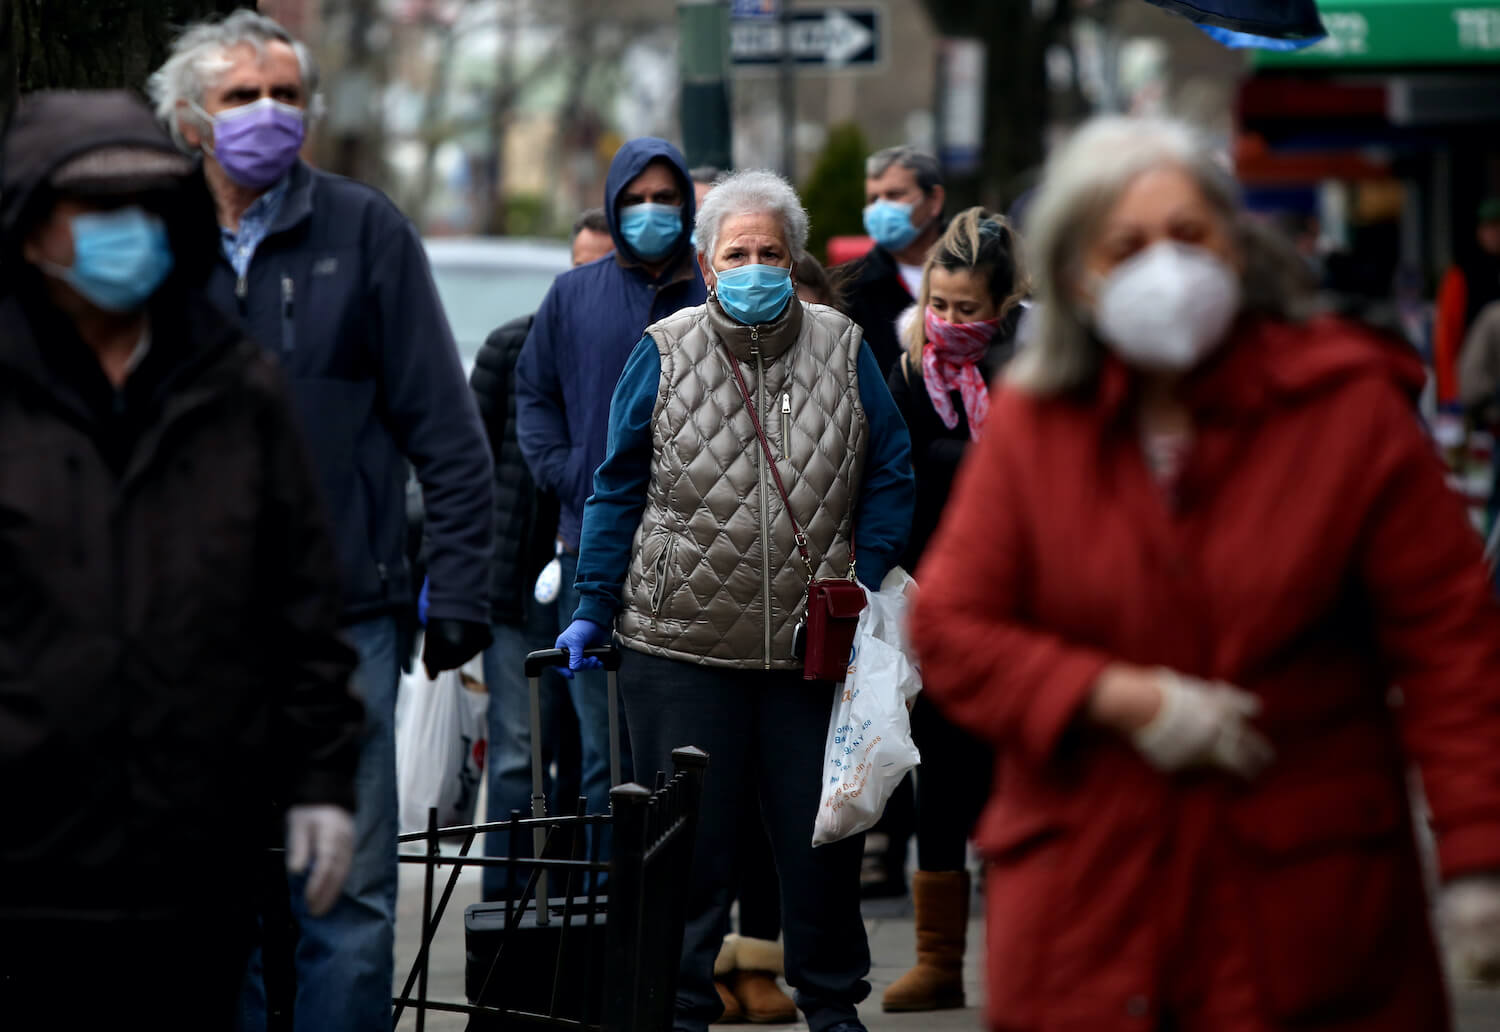 A line of masked people wait to pick up food from Biancardis on Arthur Ave. in the Bronx, NY, on April 10, 2020. March 2021